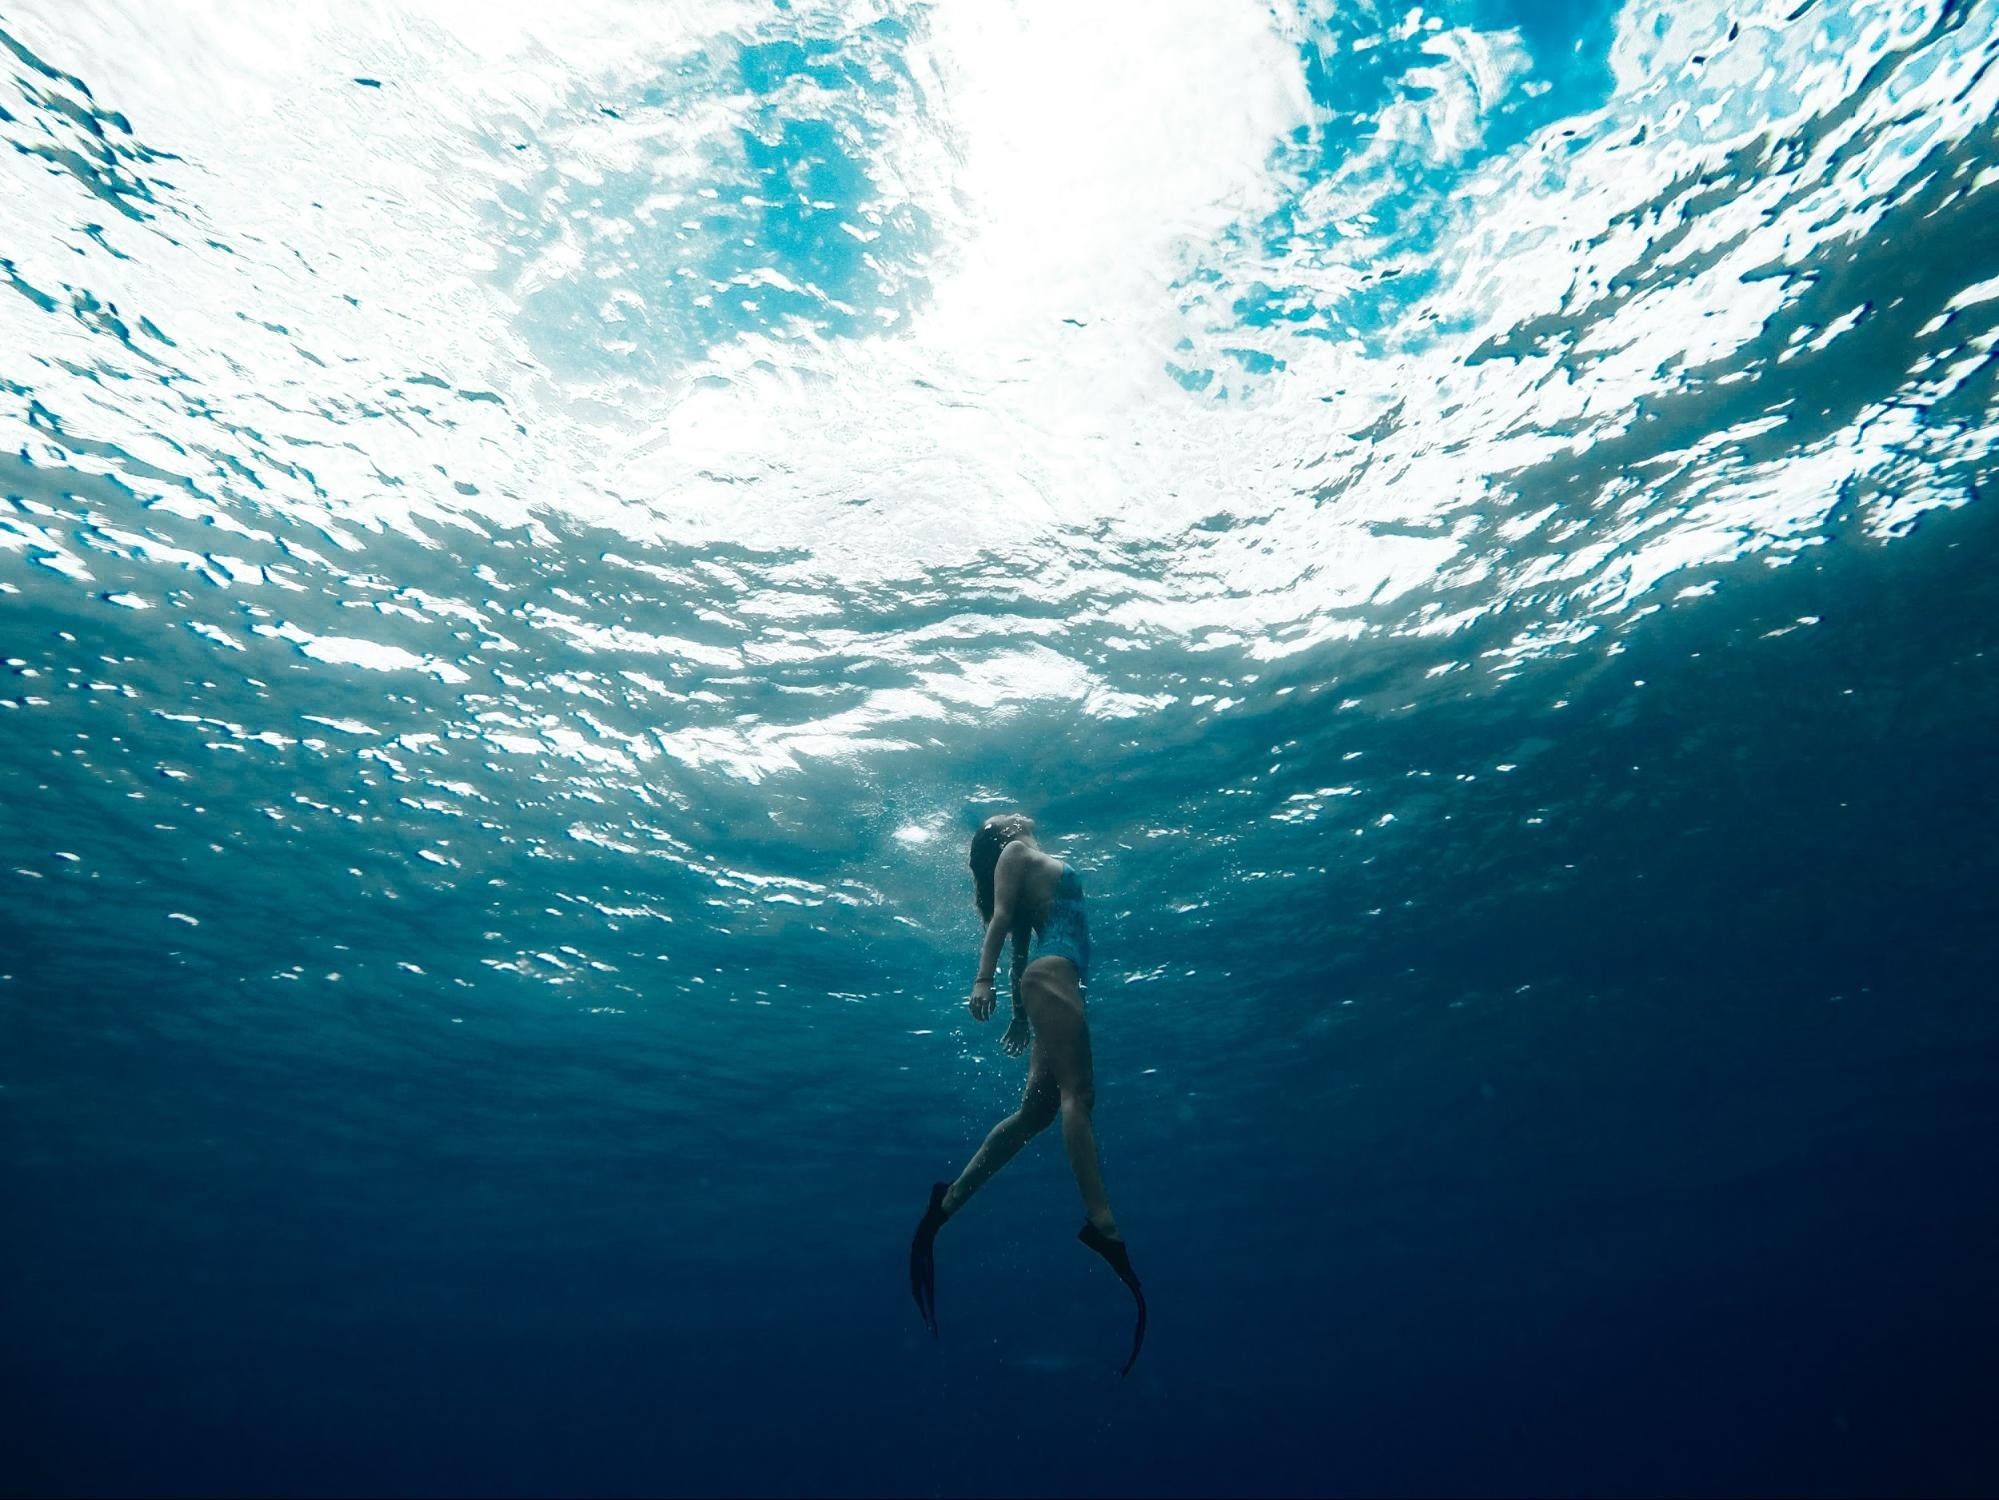 Ear pain & diving: why your ears hurt underwater